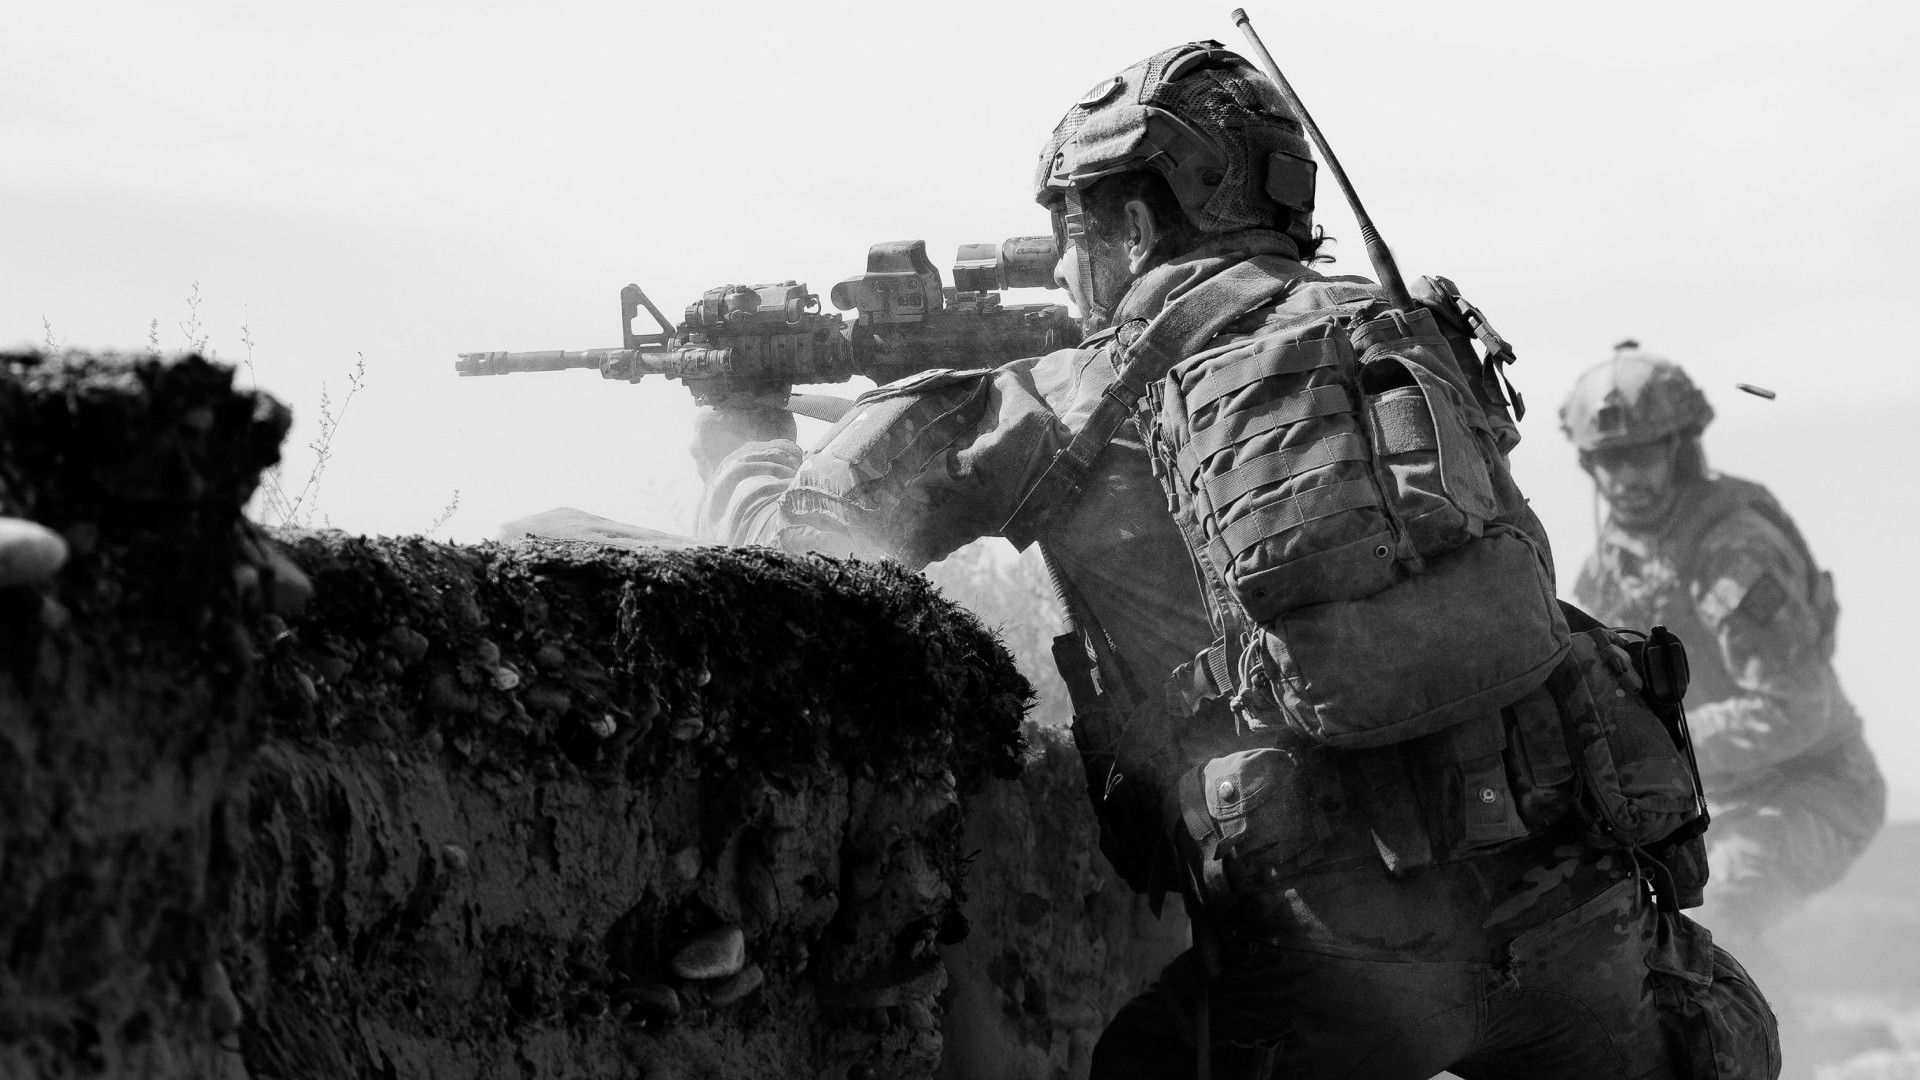 Hd wallpaper zone - Army Force Wallpapers Wallpaper Zone